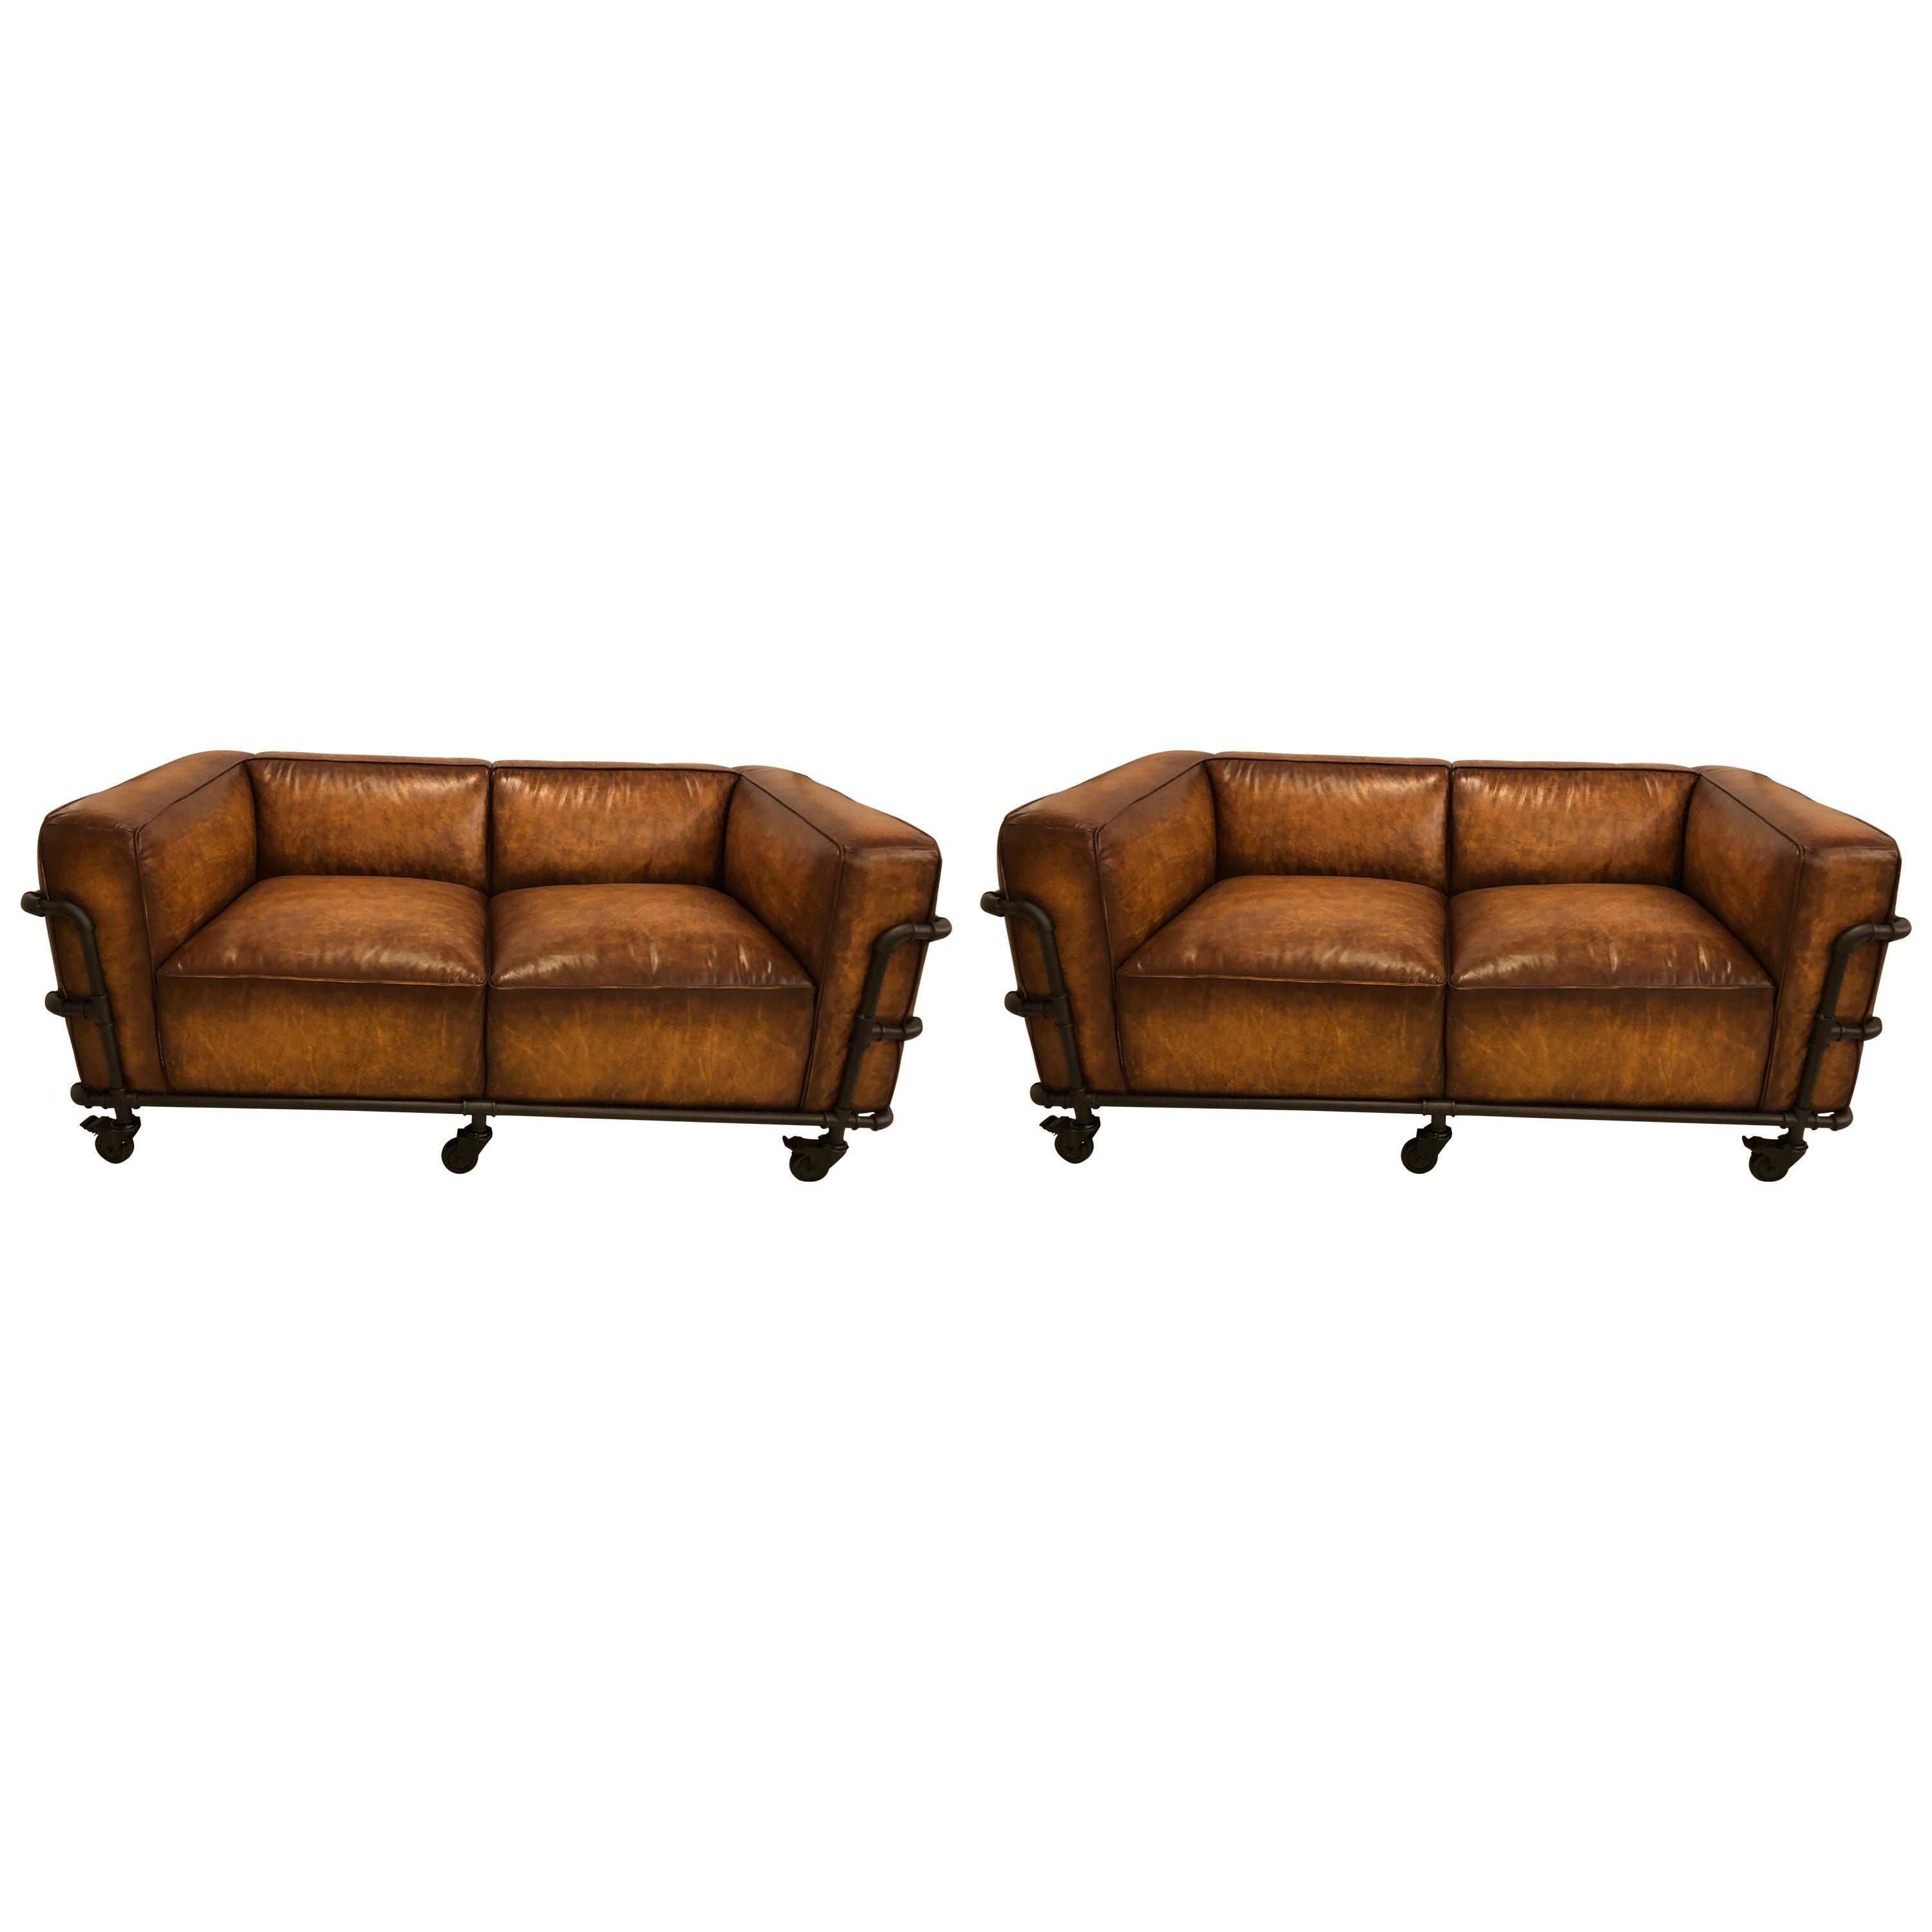 leather armchair metal frame chair design workshop pair of industrial style sofas on piping with casters at 1stdibs